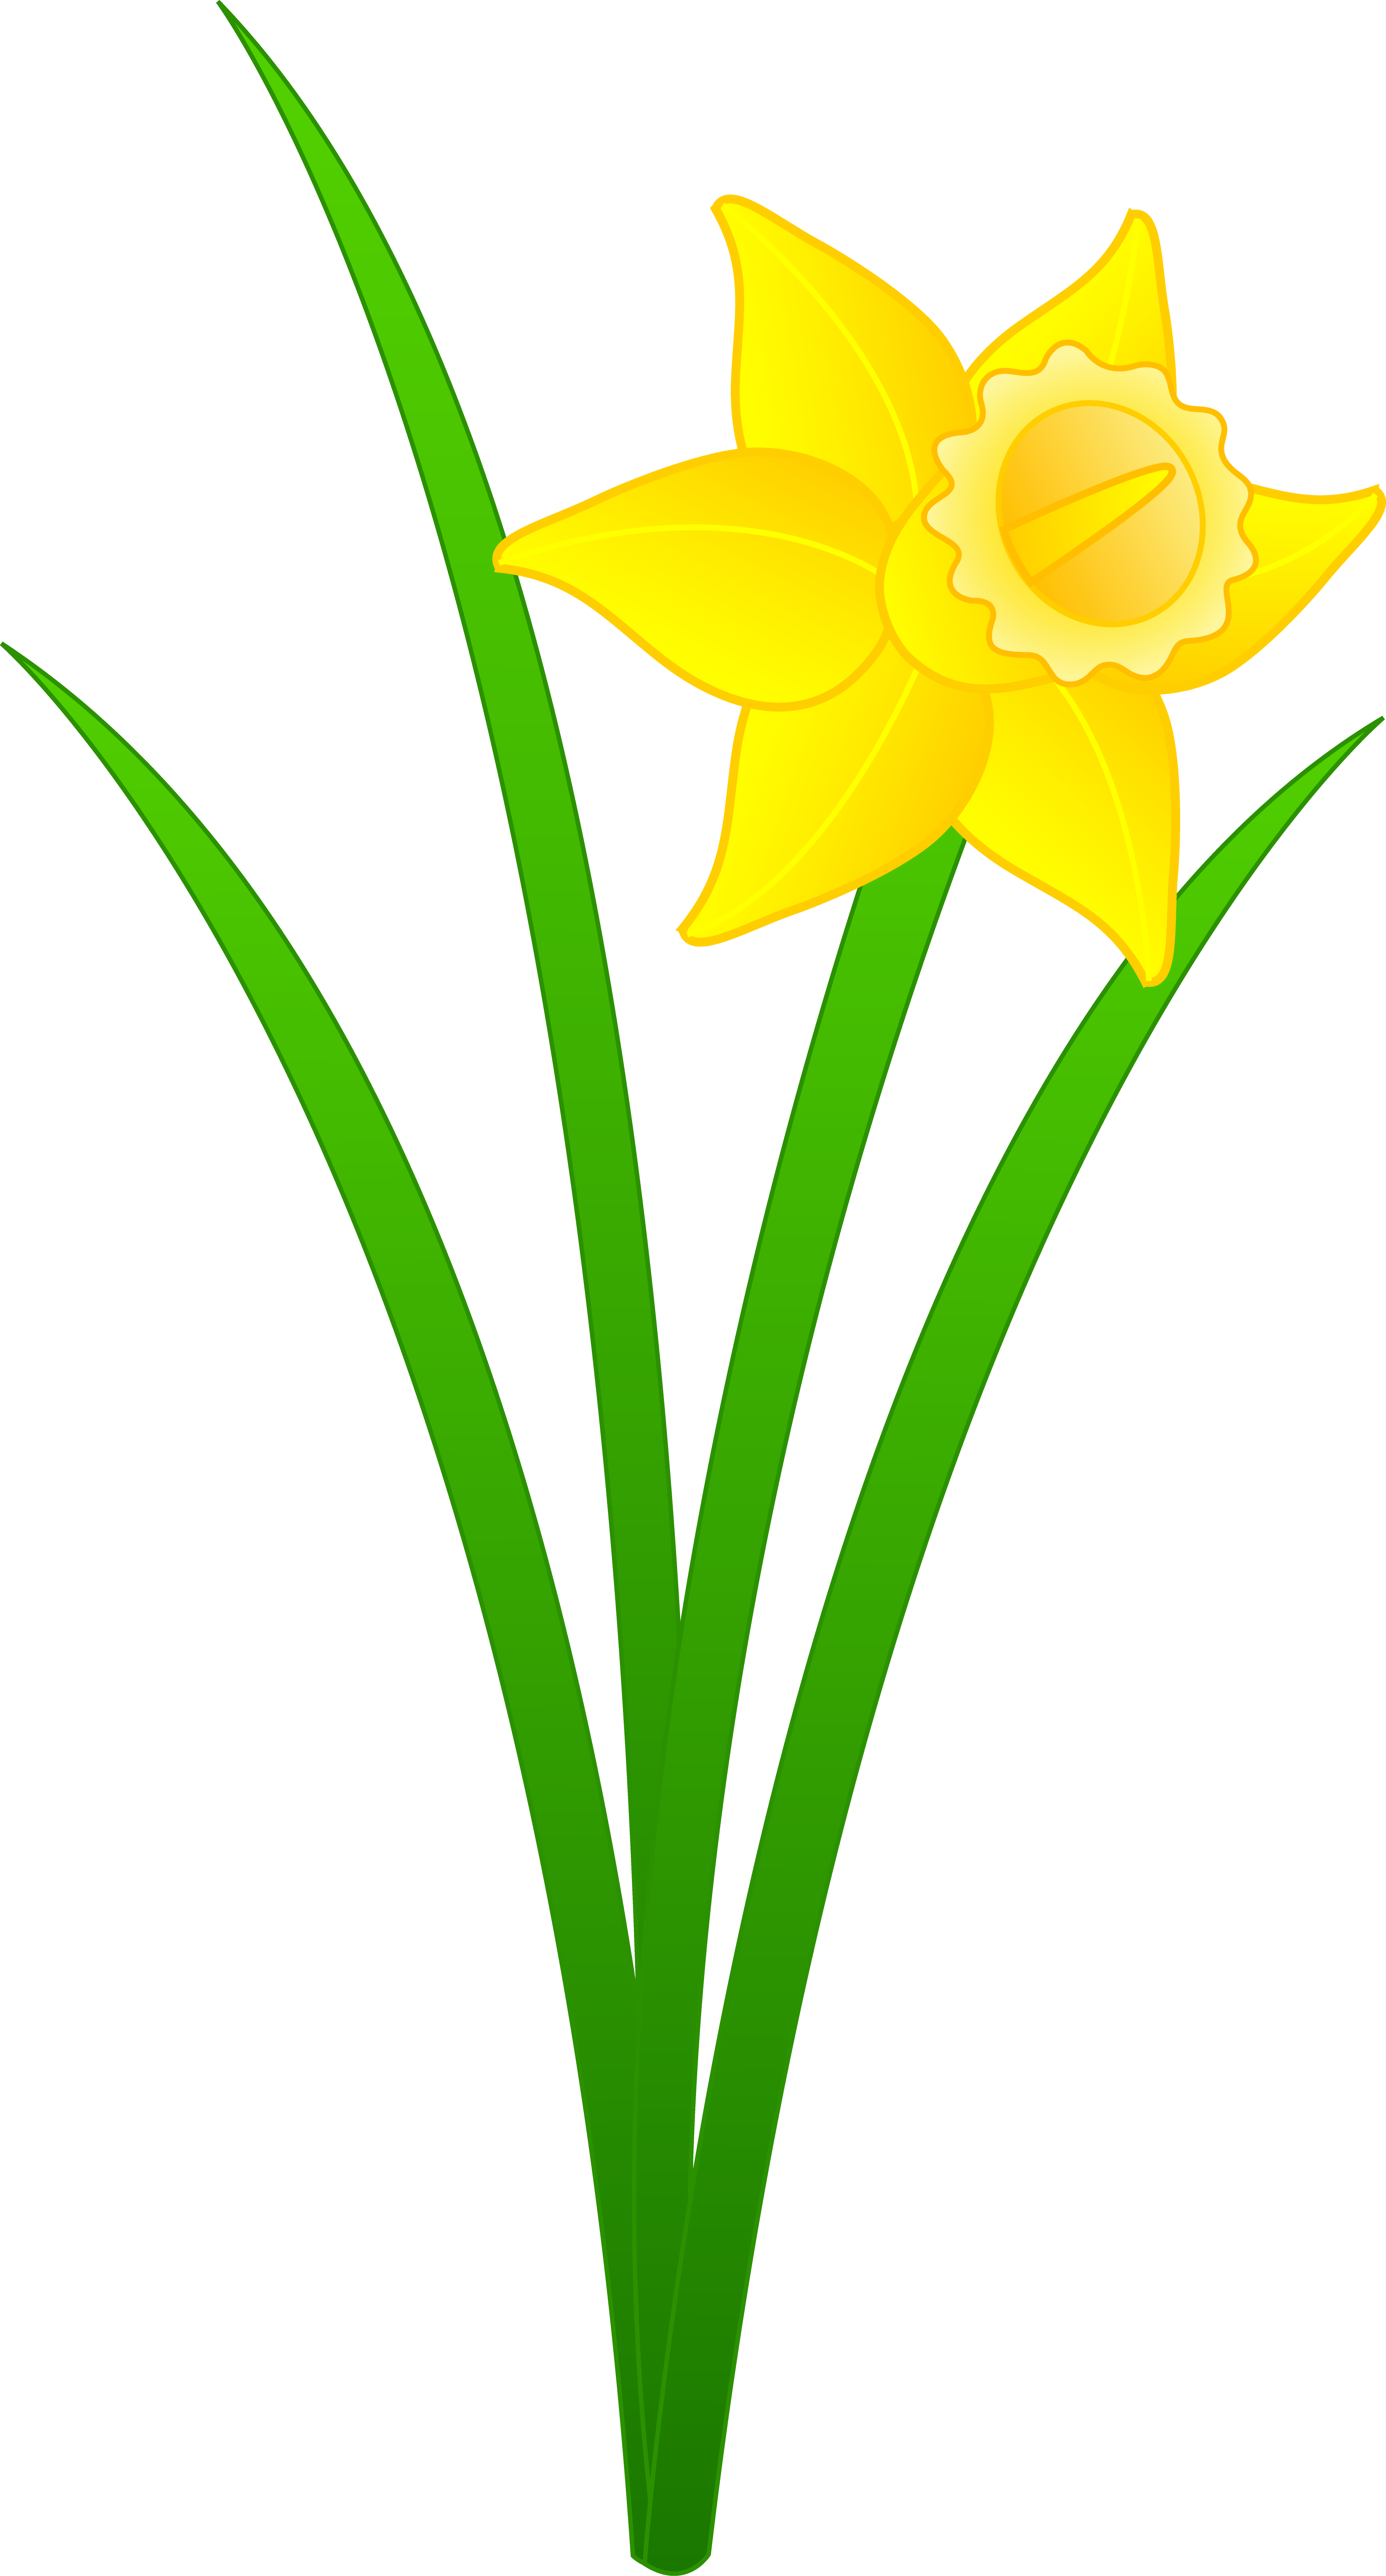 Clipart daffodils graphic freeuse stock Single Golden Daffodil - Free Clip Art graphic freeuse stock